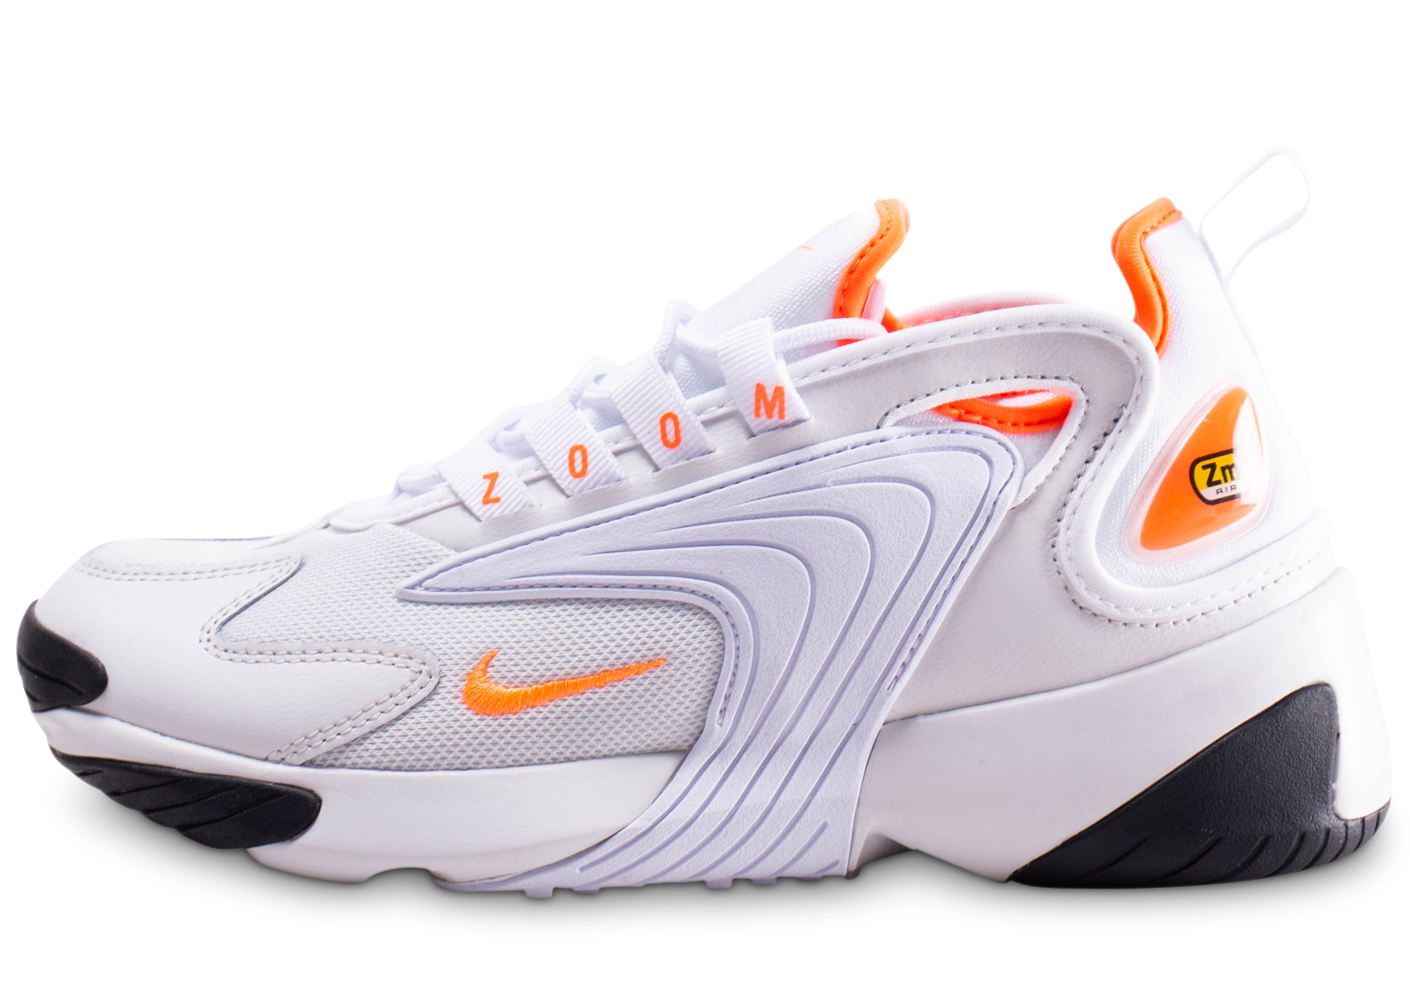 outlet boutique nice shoes clearance sale Nike Zoom 2K blanche et orange femme